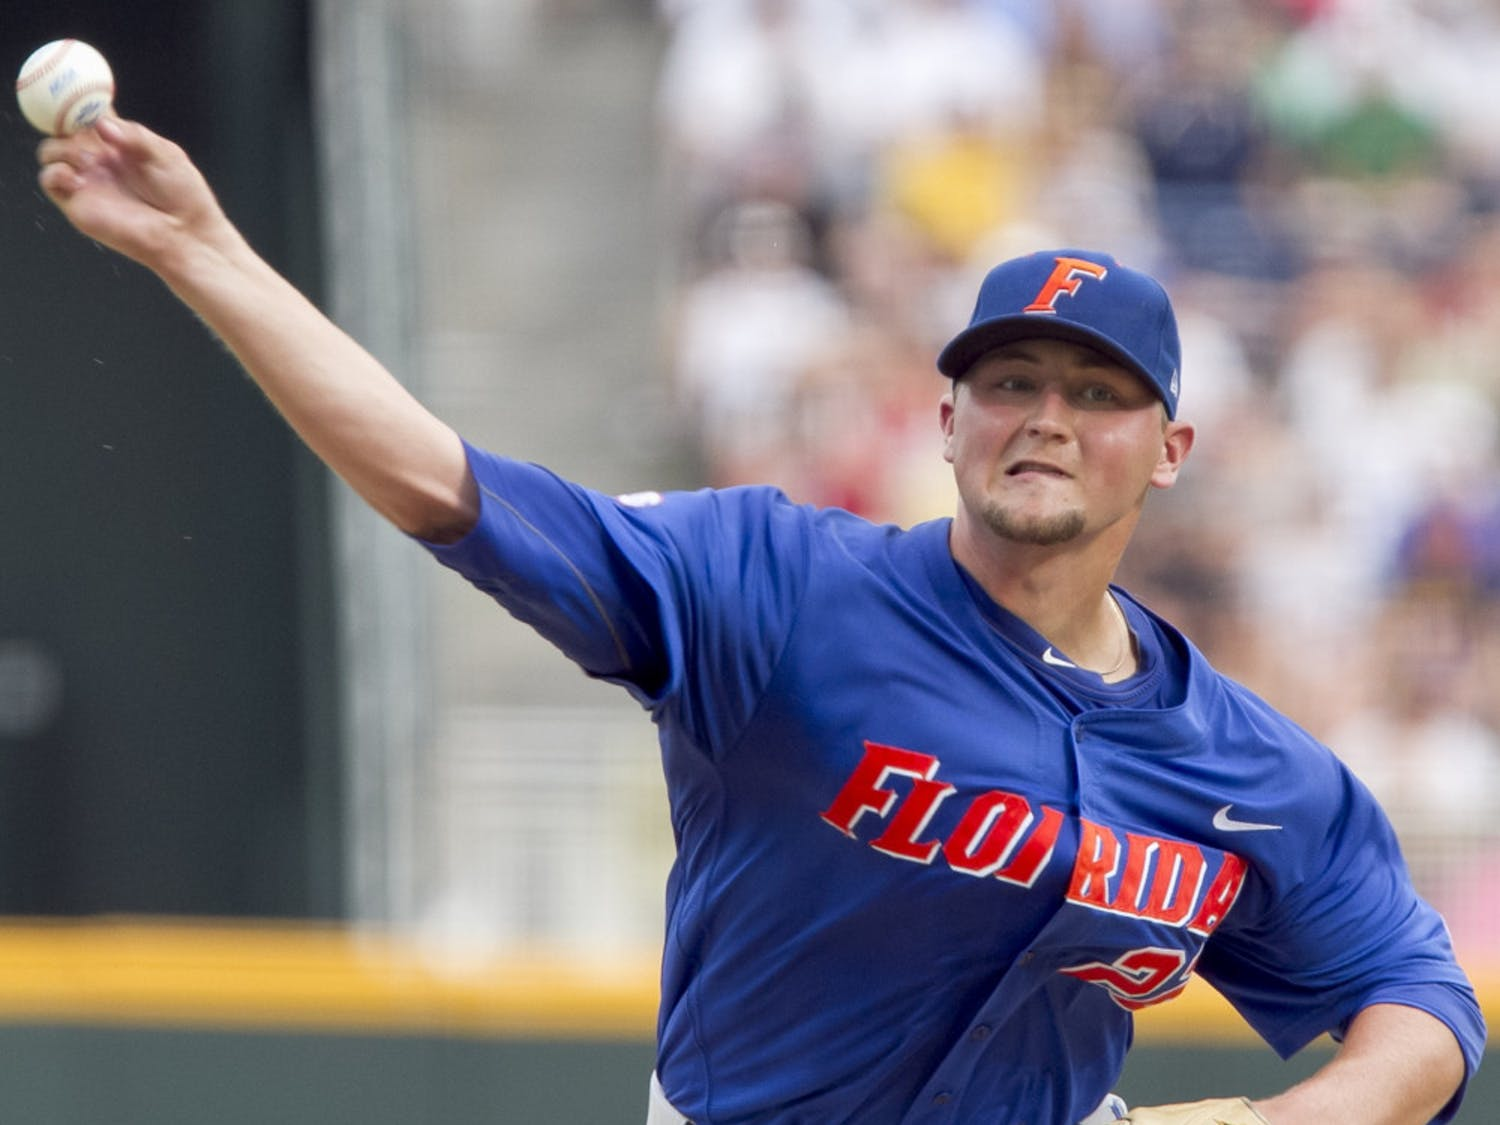 Despite his youth, Florida freshman Karsten Whitson (8-0, 2.43 ERA) has flummoxed hitters all season. The powerful right-hander was a key caveat in Florida 3-1 win over Vanderbilt Tuesday in the weather-suspended contest at the College World Series.